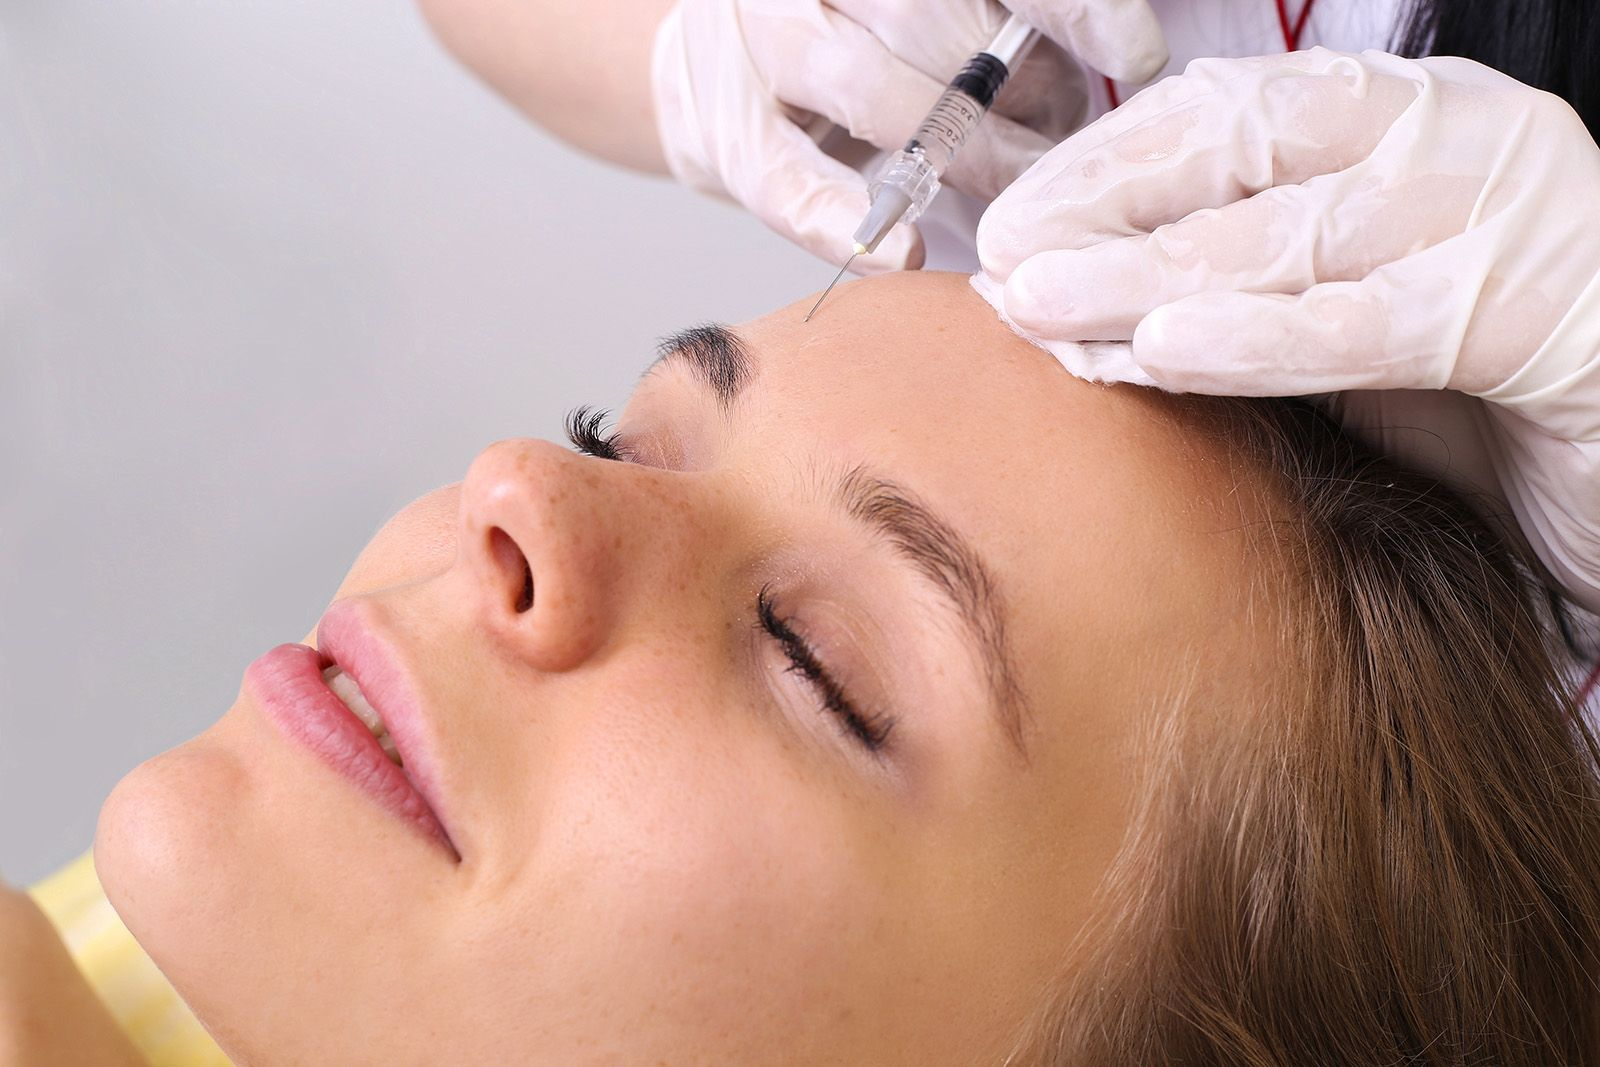 A woman undergoing BOTOX injection treatment